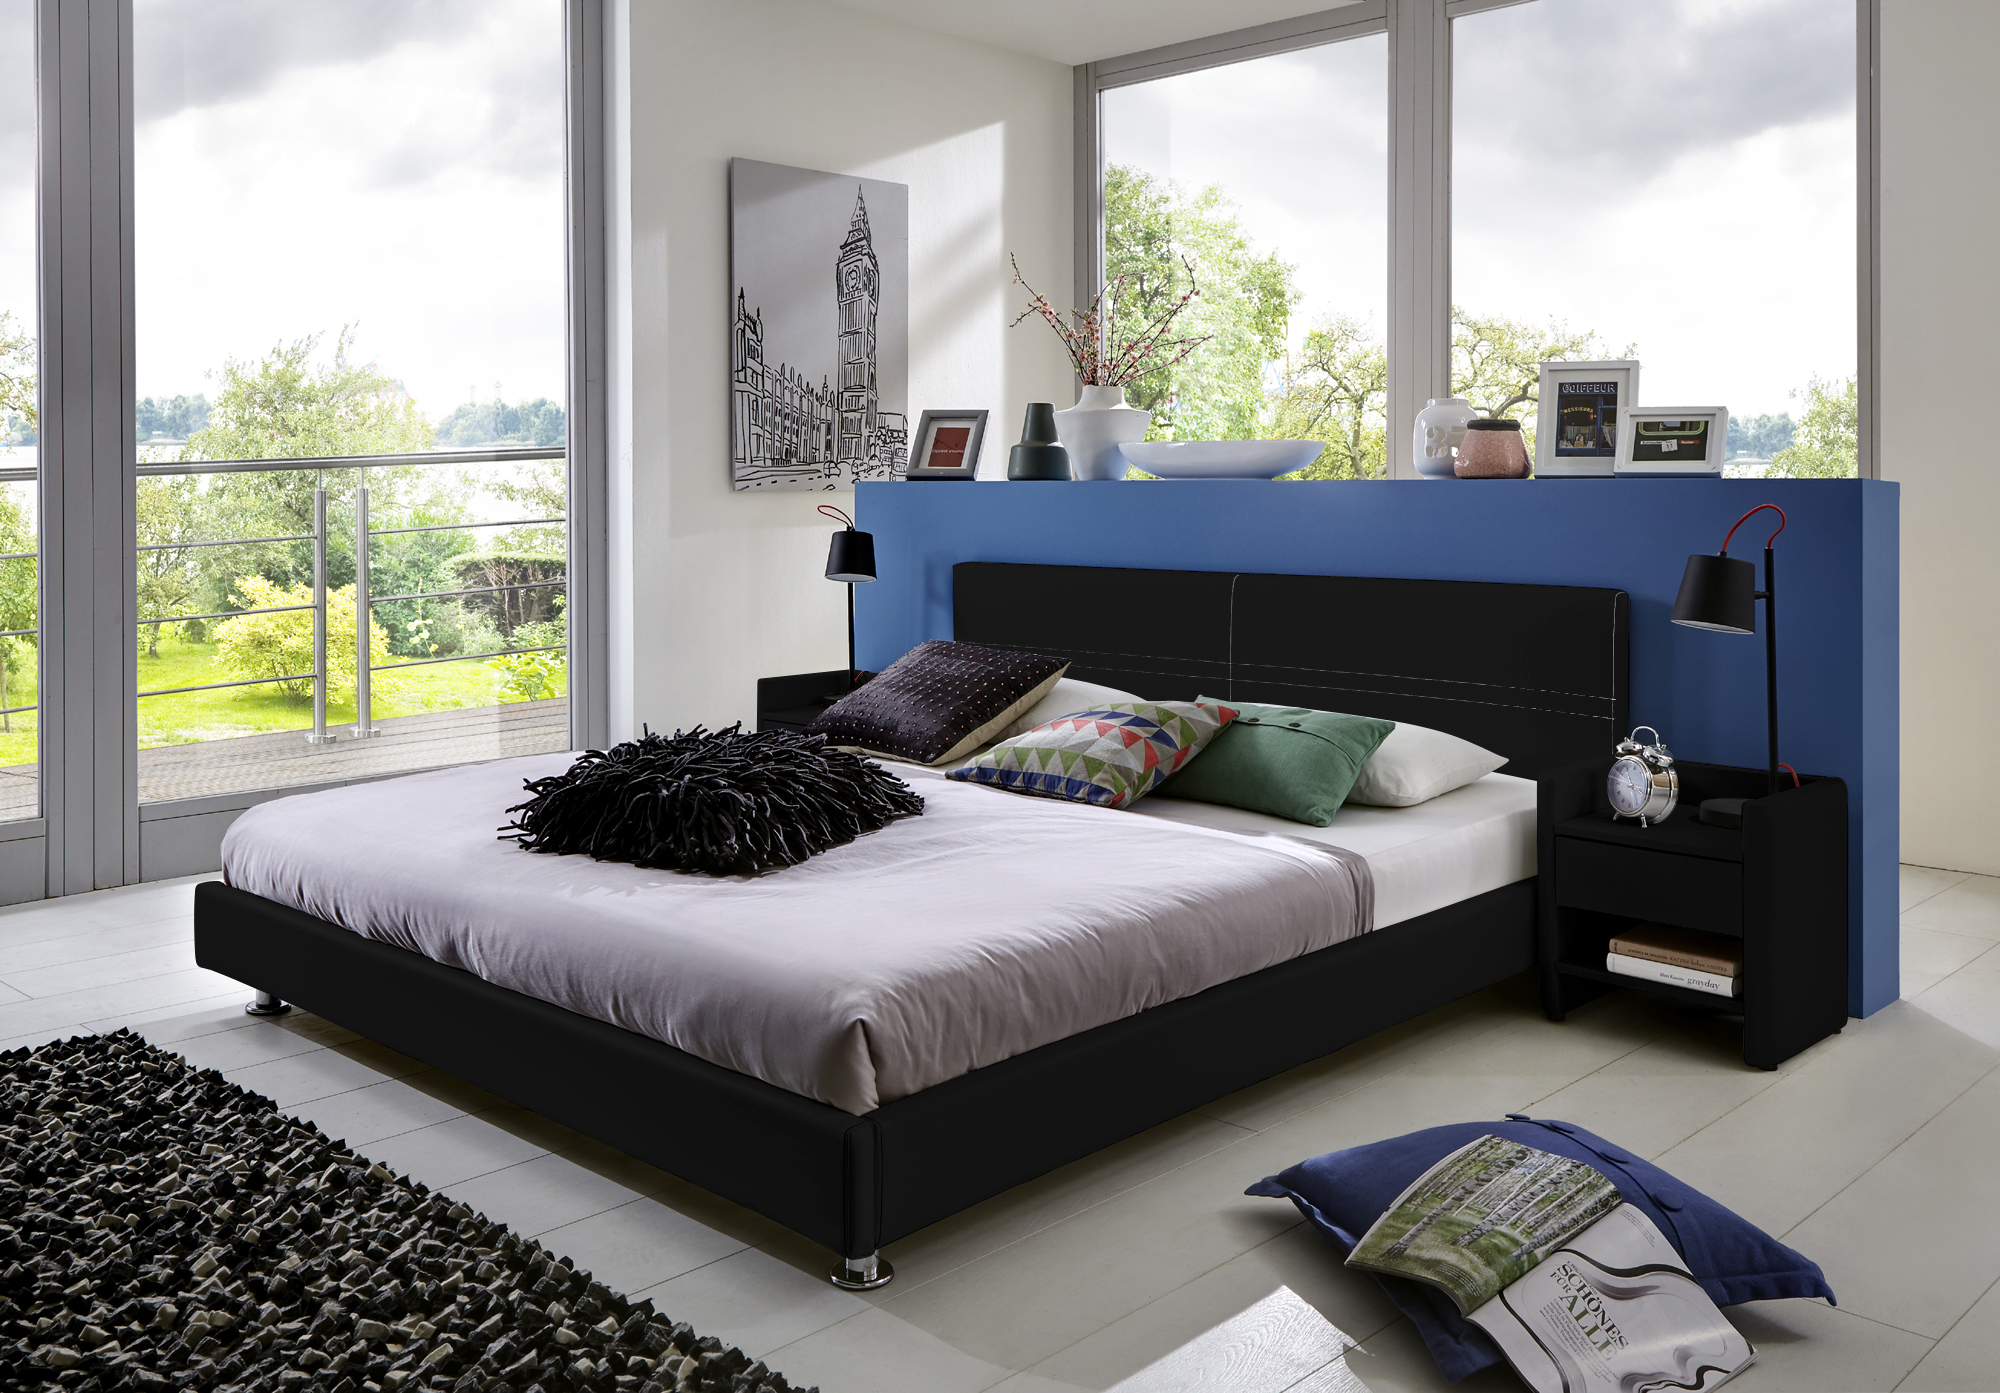 sale polsterbett bettgestell 140 x 200 cm schwarz michelle. Black Bedroom Furniture Sets. Home Design Ideas